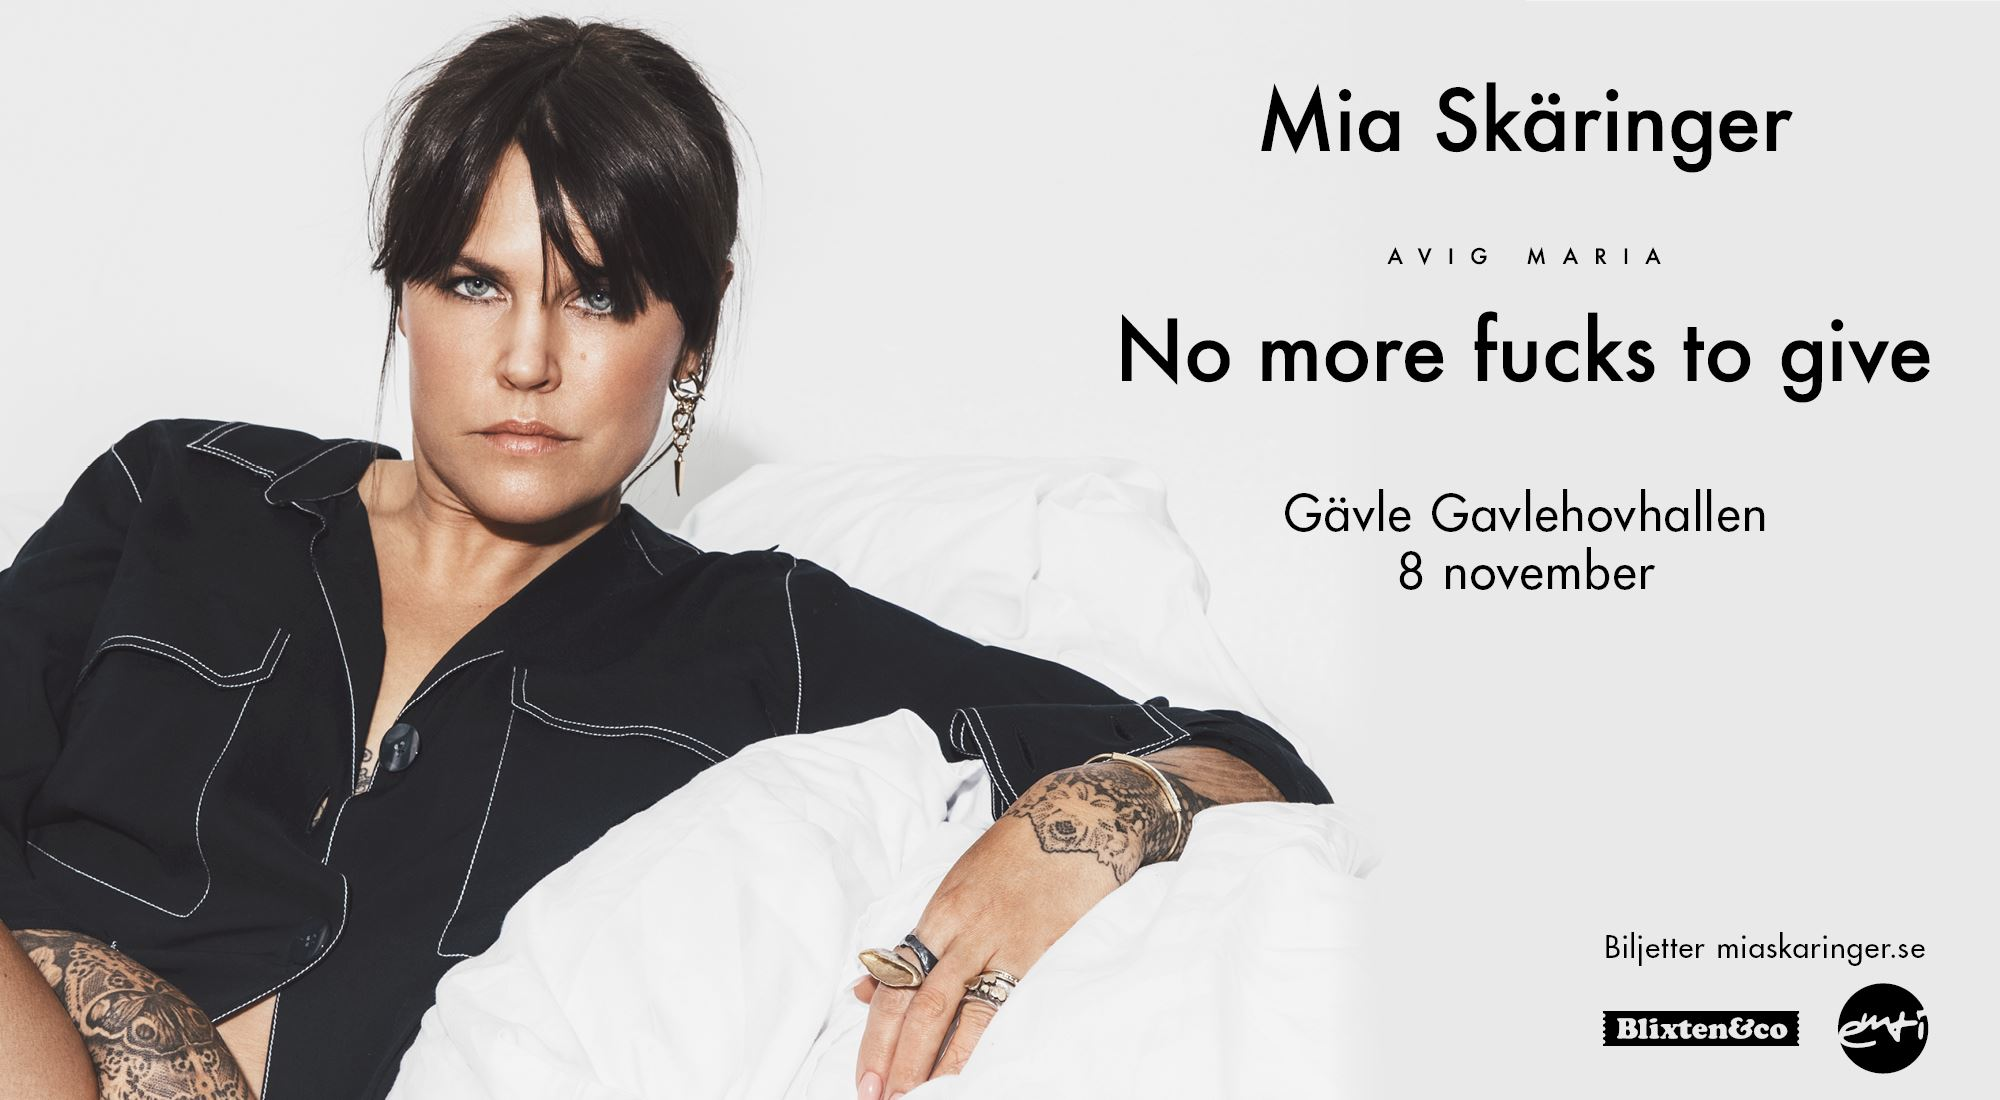 Mia Skäringer på arenaturné med Avig Maria - No more fucks to give!